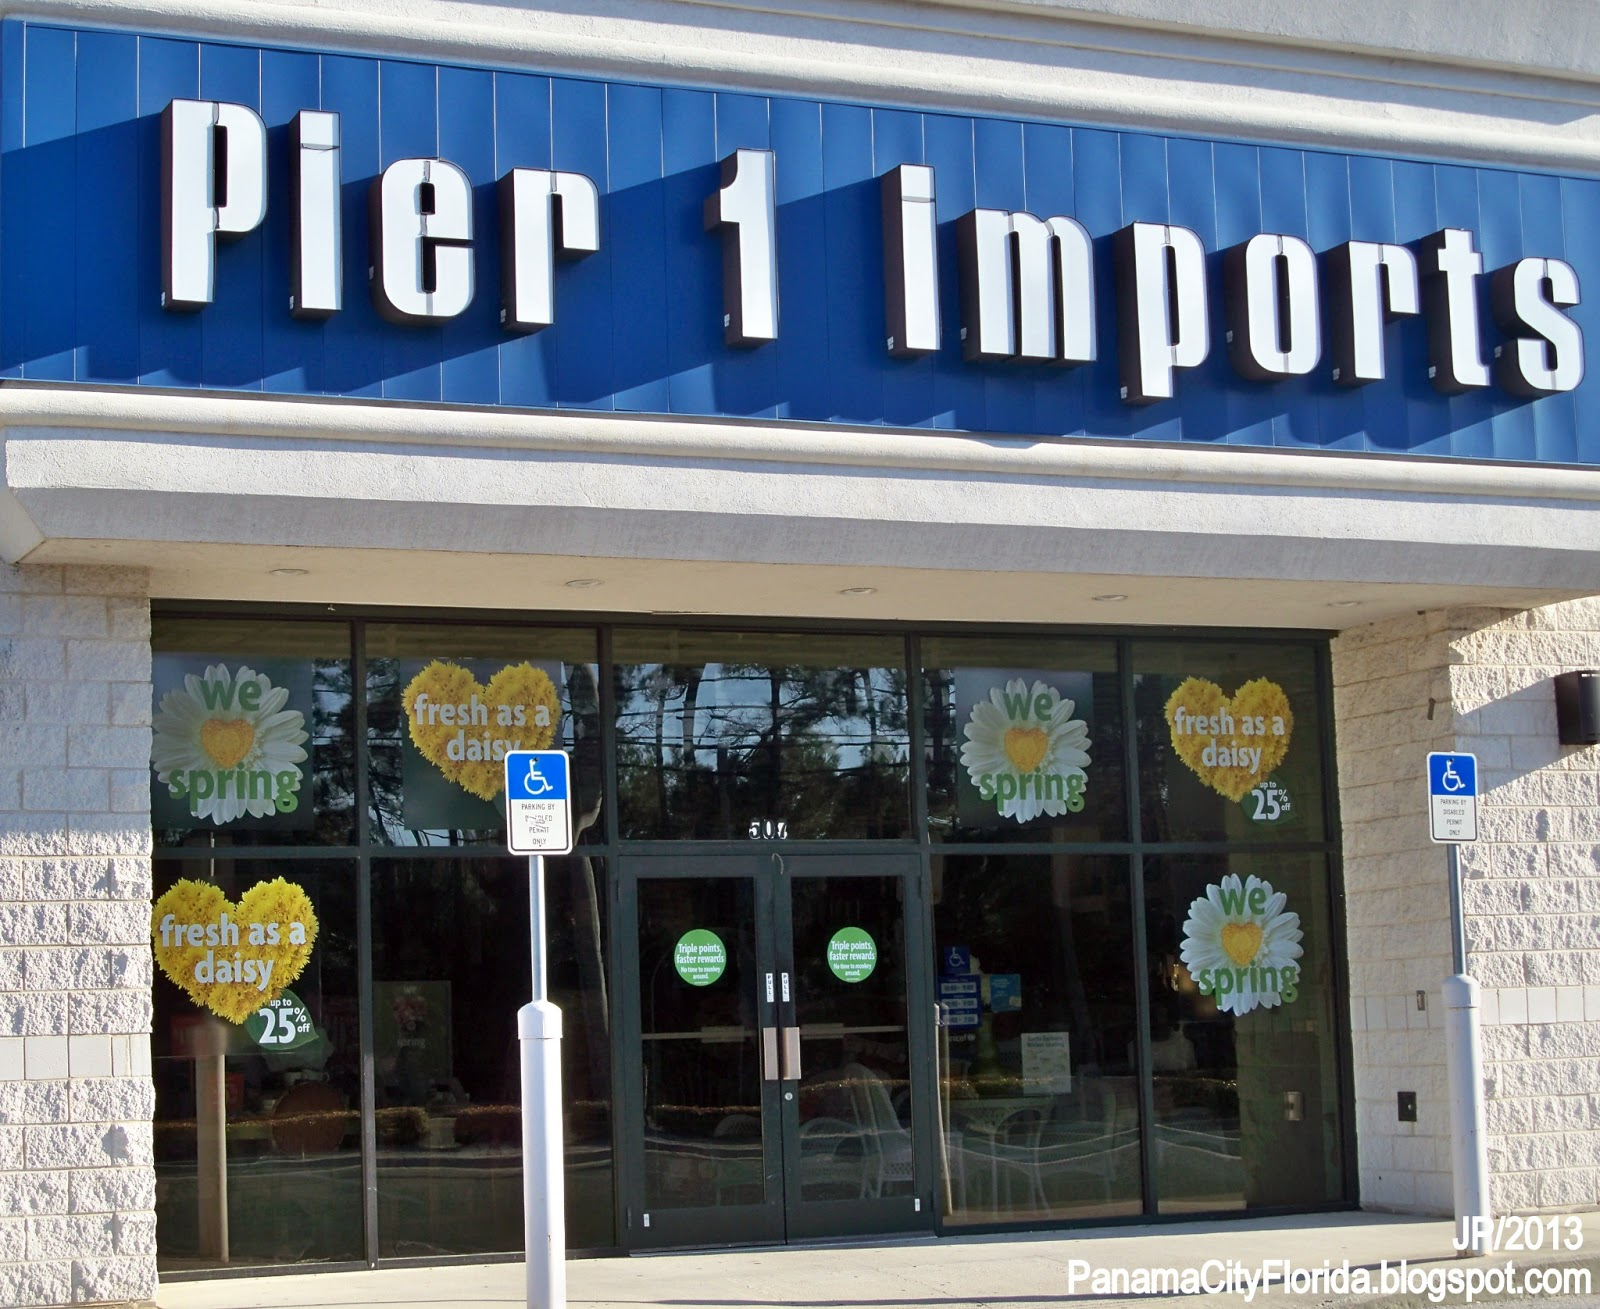 "Pier 1 Imports plans to shutter up to stores over the next three years. April 9, , David Gill FORT WORTH, Texas- Coming off what President and CEO Alex Smith described as a ""poor"" fiscal year, Pier 1 Imports plans to shutter up to stores over the next three years."